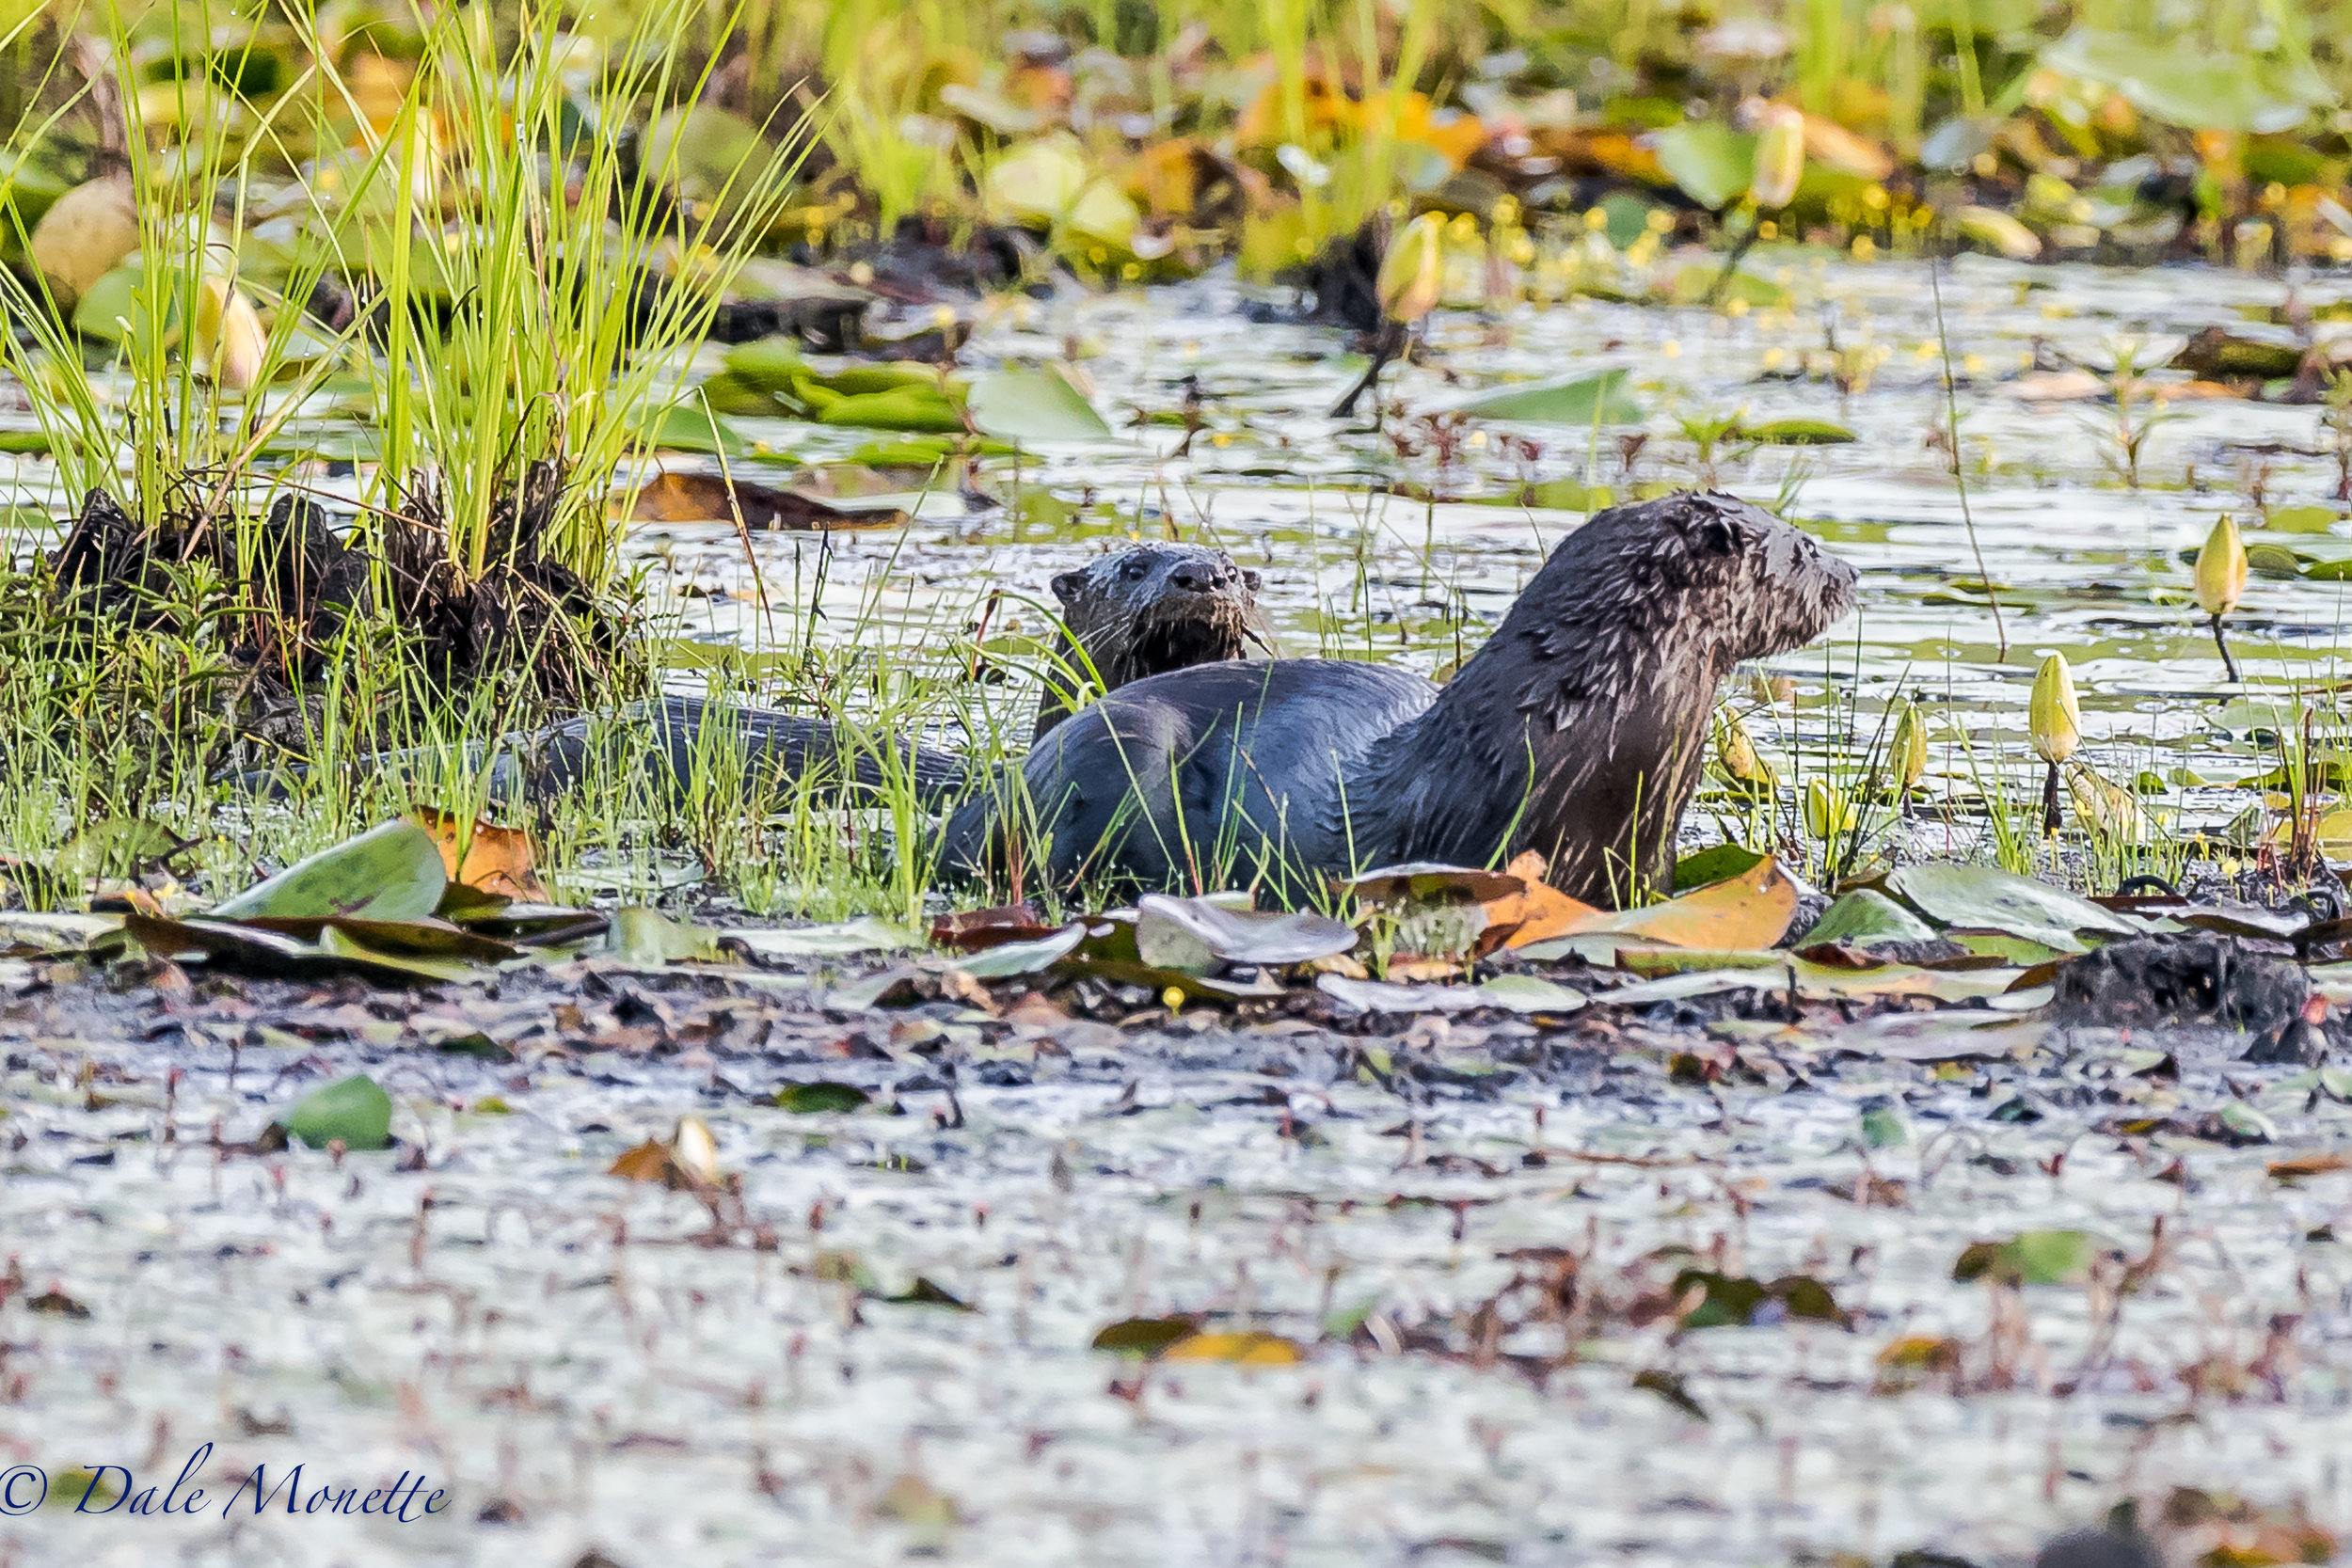 """This morning I played another game of """"hide and seek"""" with an adult otter and one of its young ones. The covered lots of ground in the pond. Finally they came in view long enough for a couple of shots. You can see the young one peeking up over the adults back. 8/2/17"""